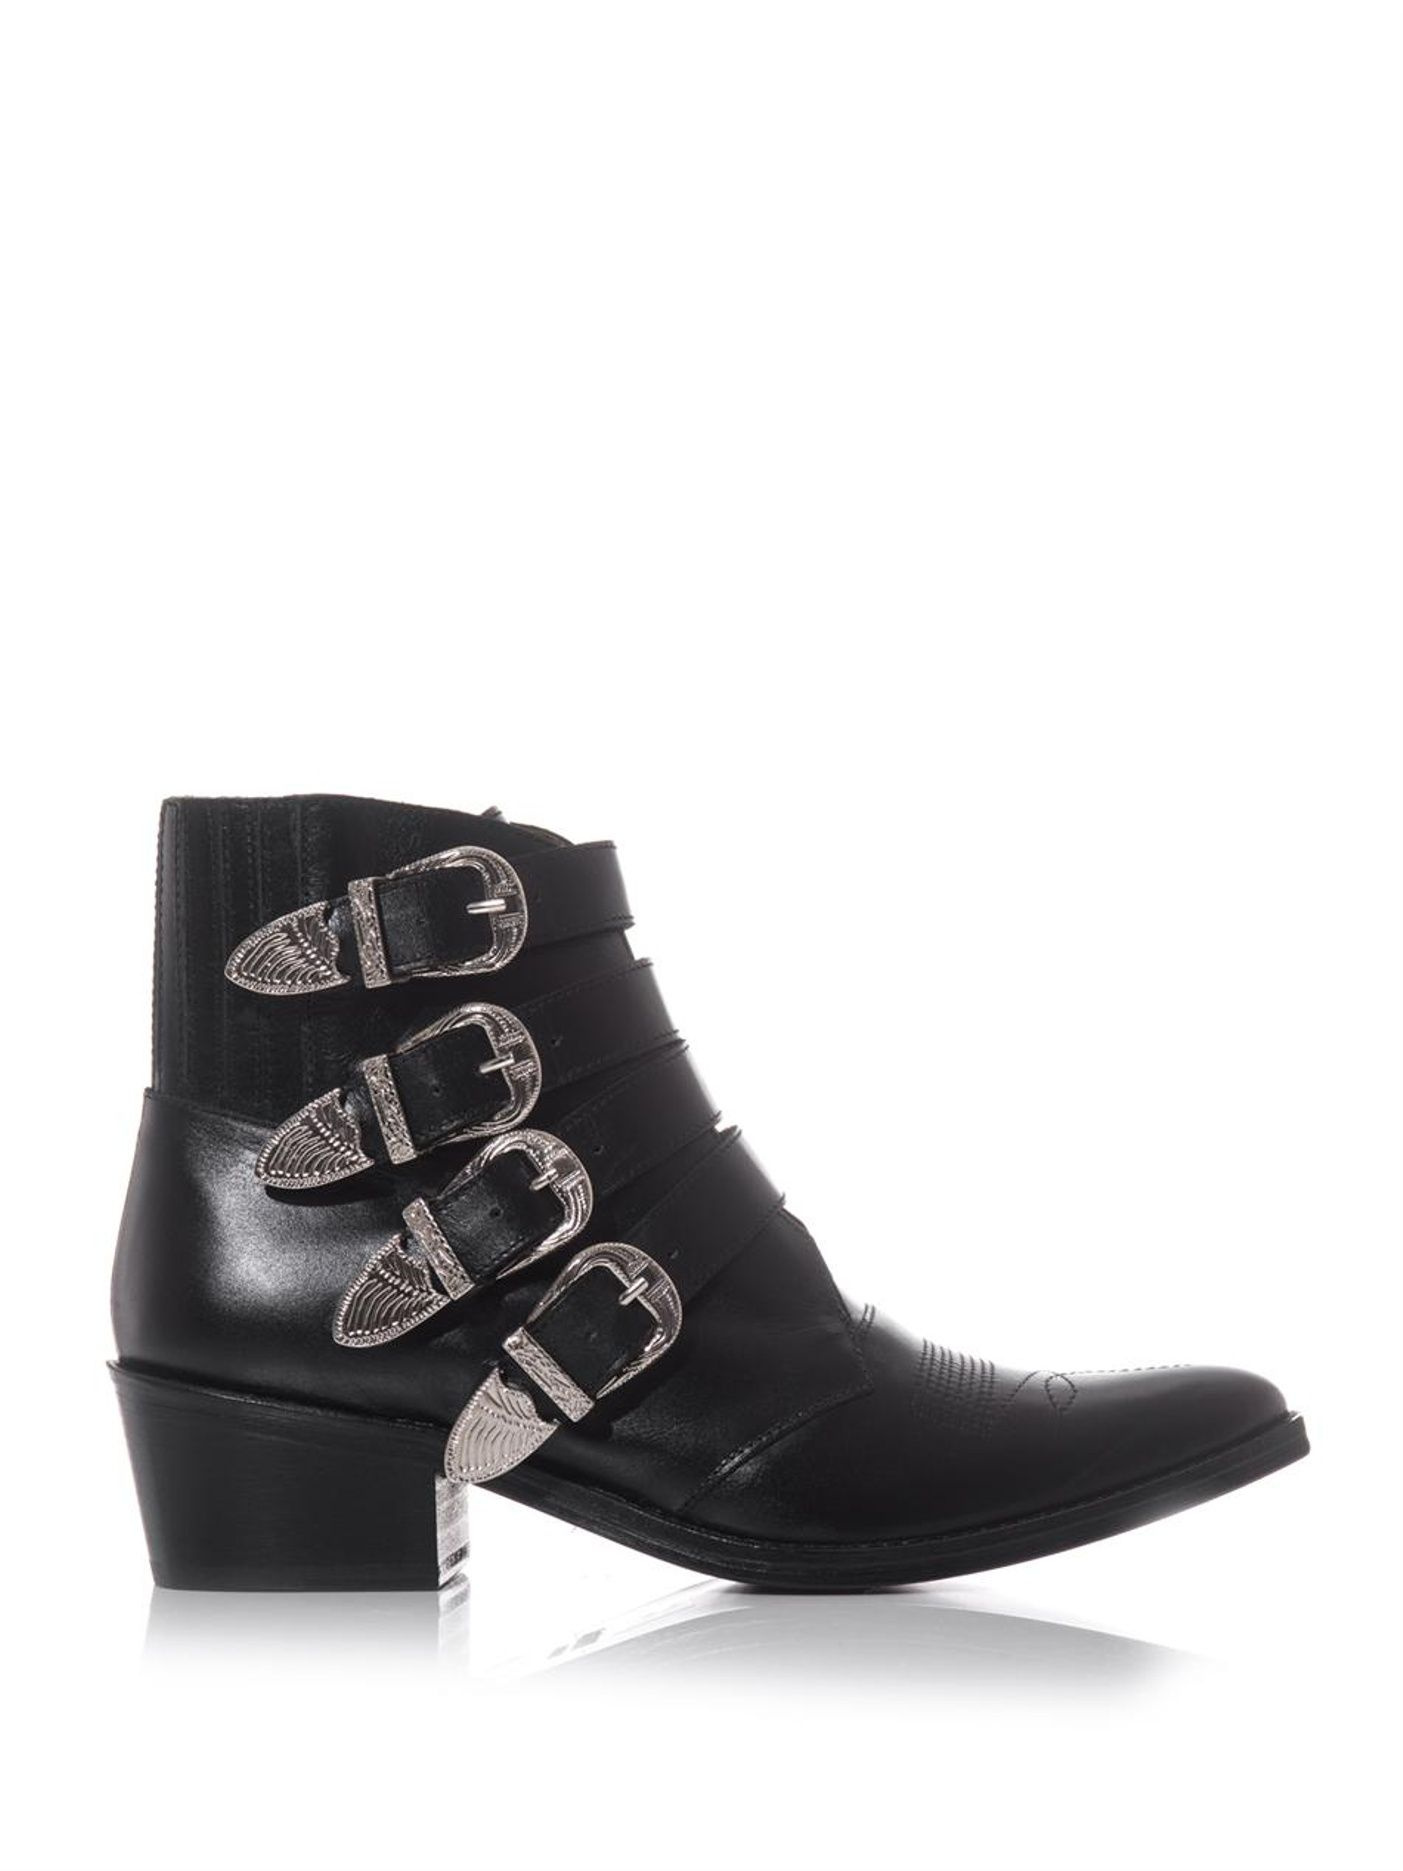 Click here to buy Toga Buckle leather ankle boots at MATCHESFASHION.COM